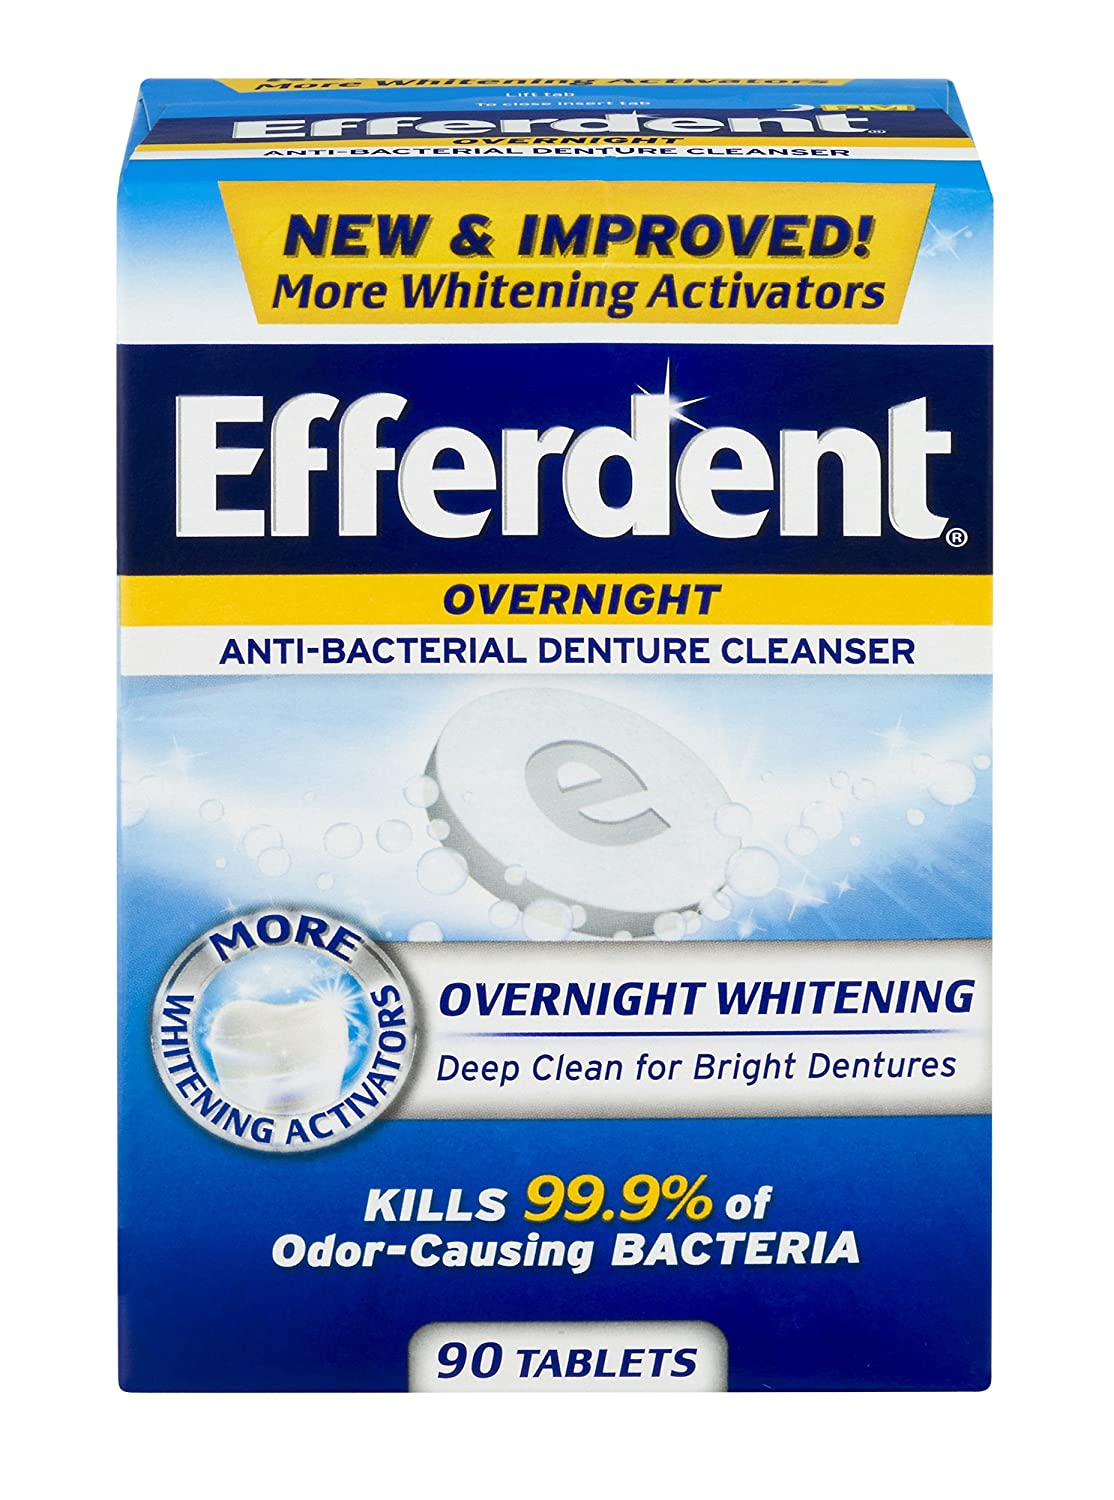 Efferdent PM Overnight Anti-Bacterial Denture Cleanser Tablets, 90 Count Medtech Product Inc.